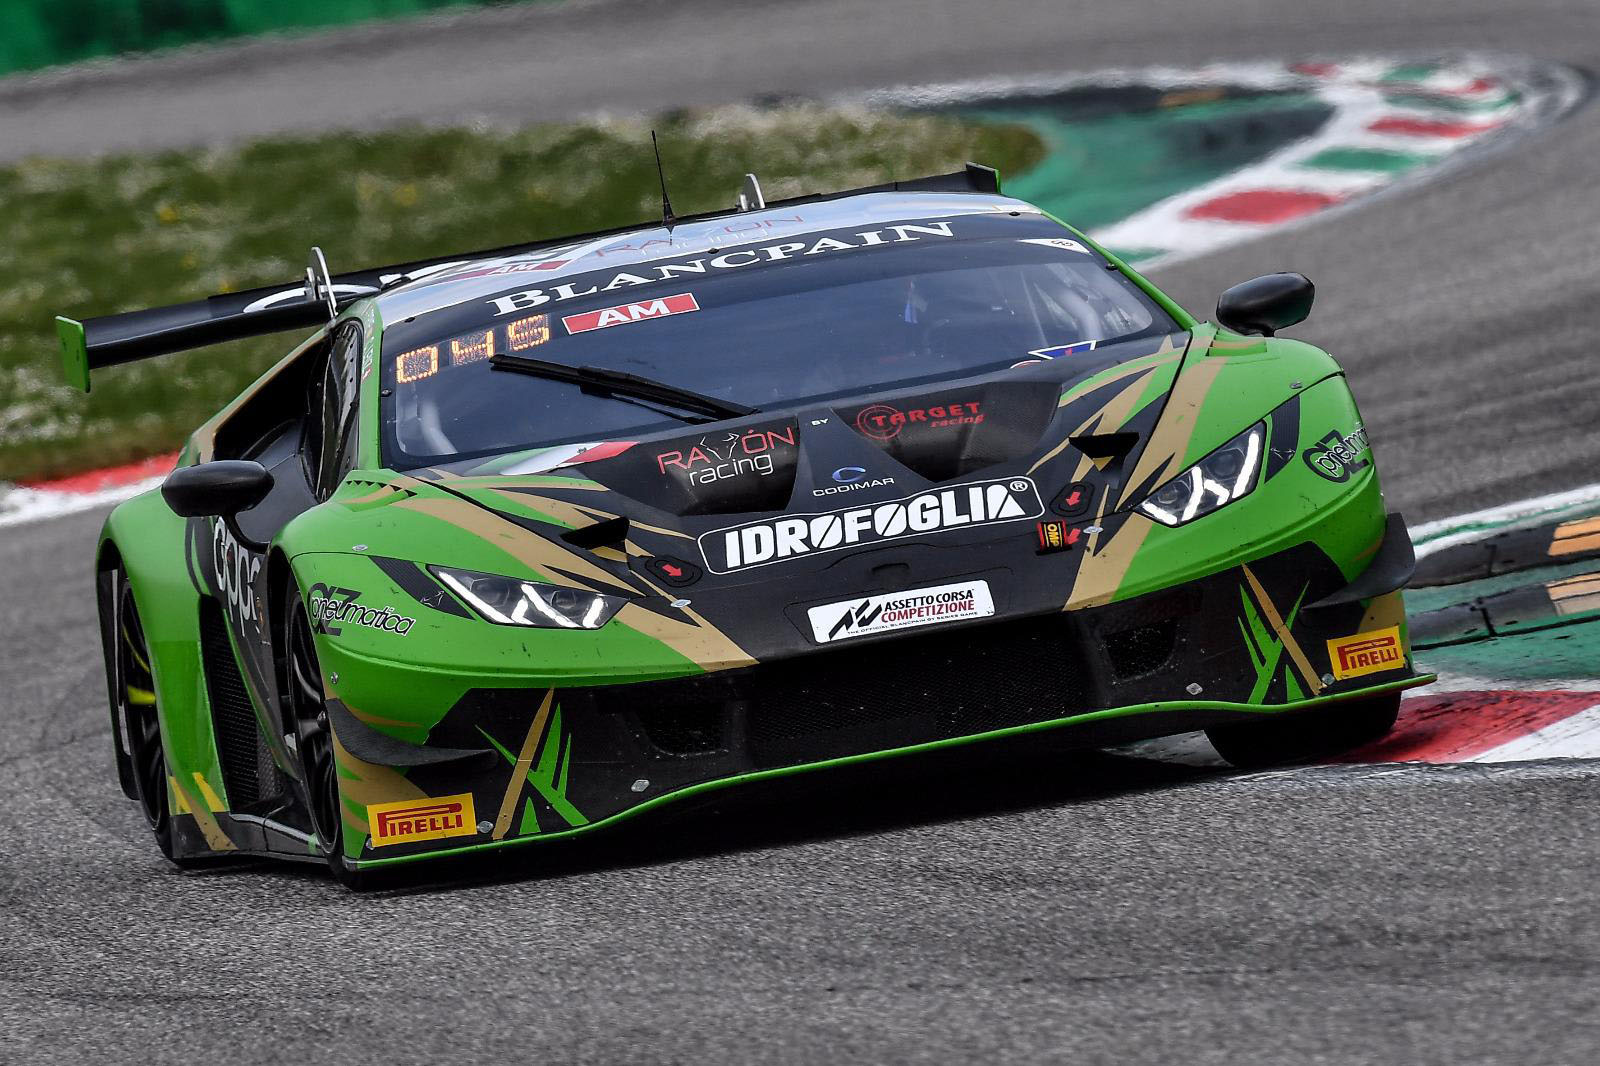 Blancpain Endurance at Silverstone - Raton by Target heads to repeat podium of Monza